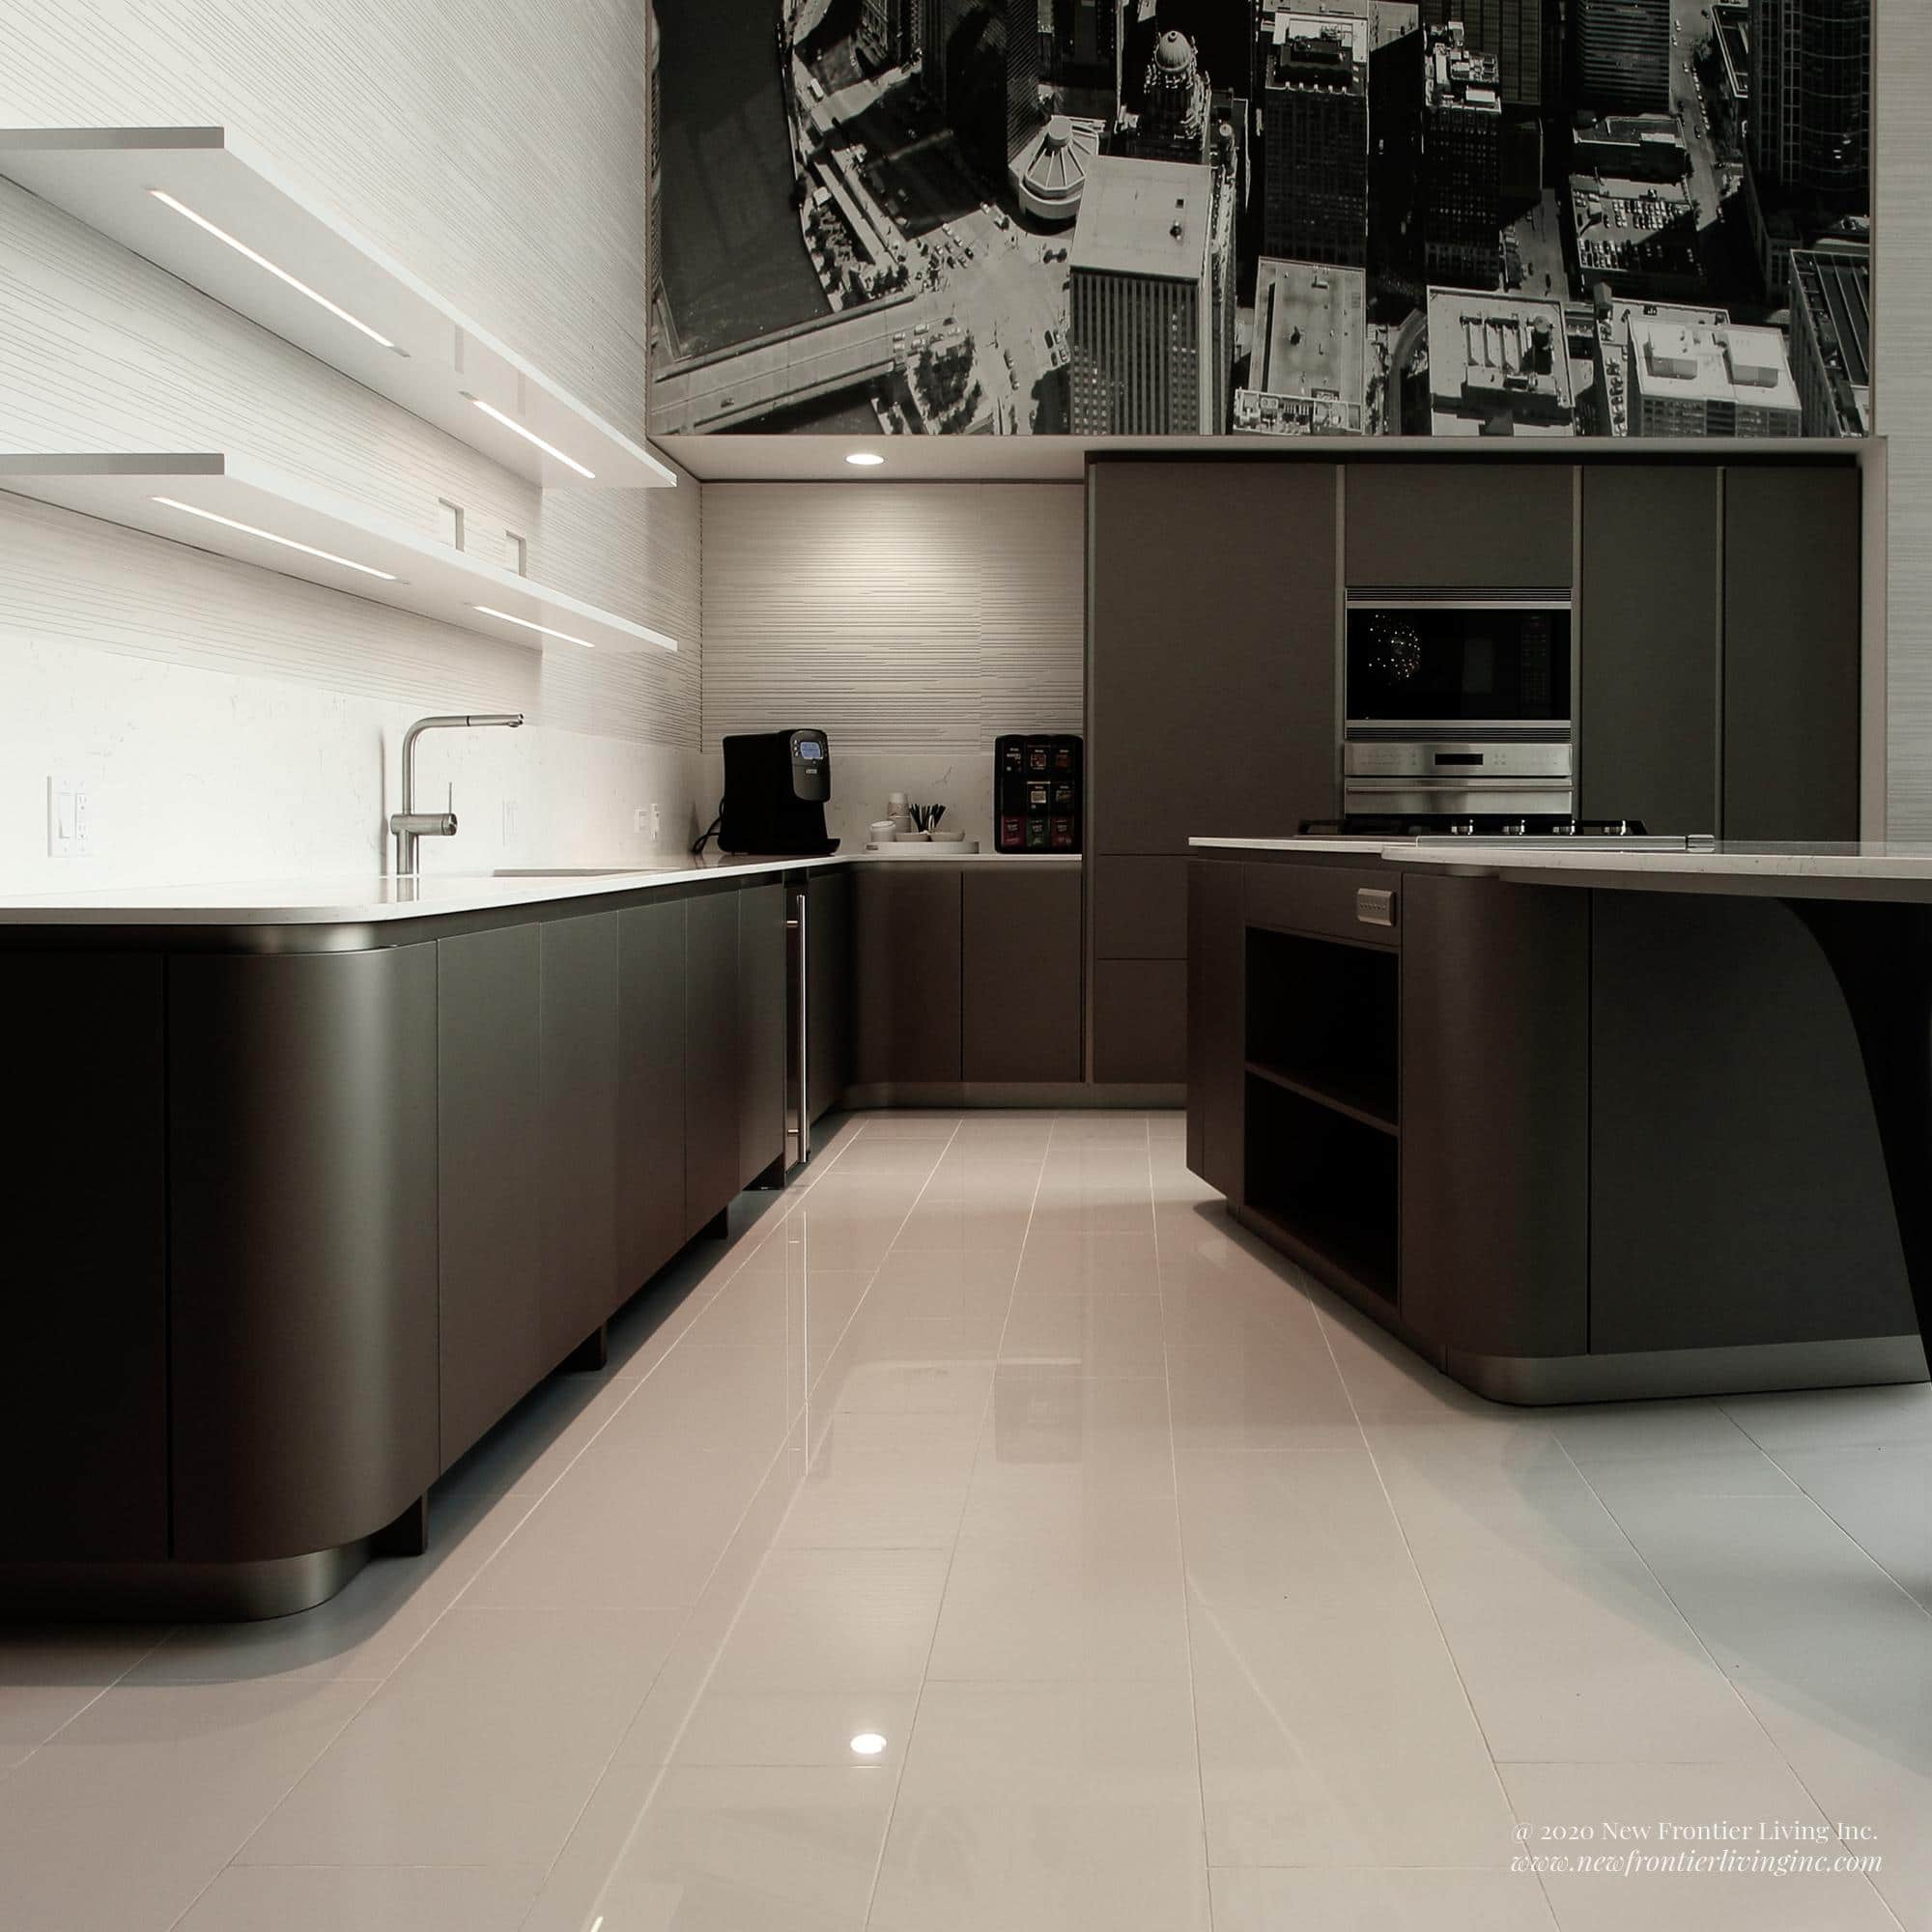 Black kitchen with white countertops and island, two long white shelves above the sink